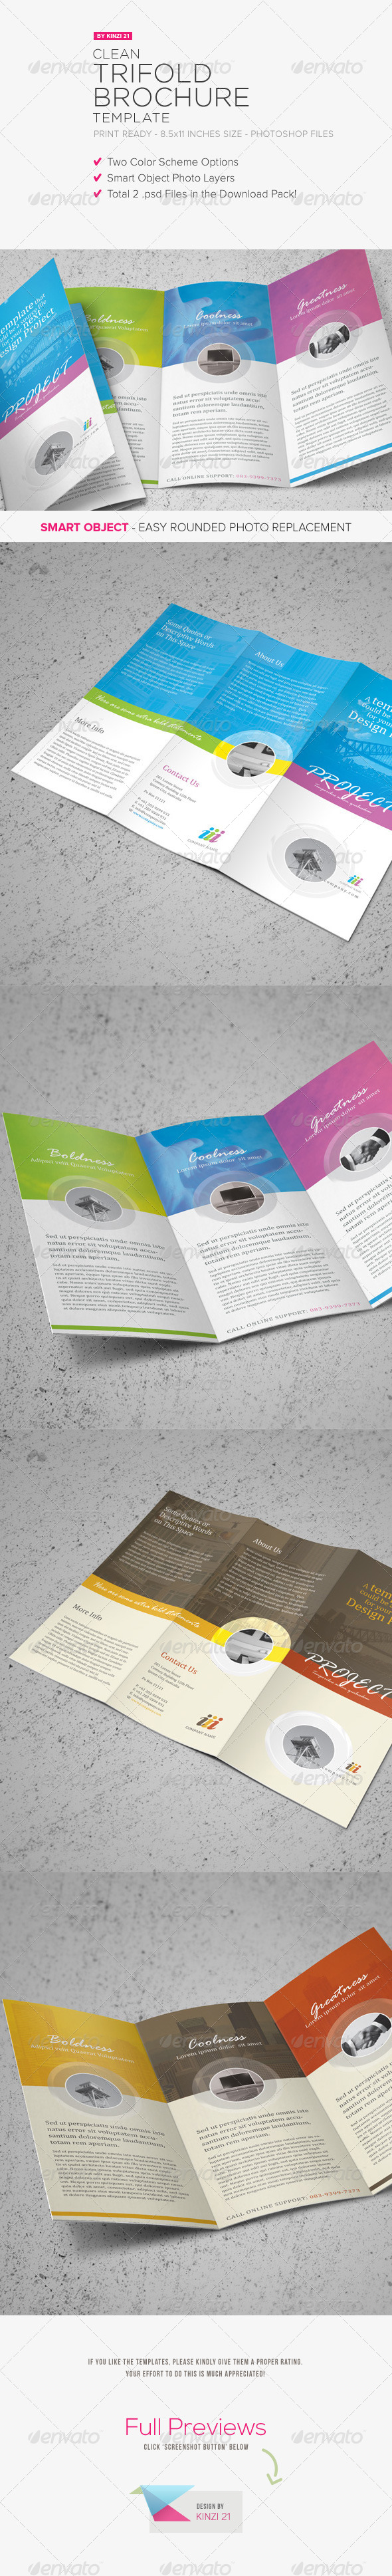 Clean Trifold Brochure Template - Corporate Brochures